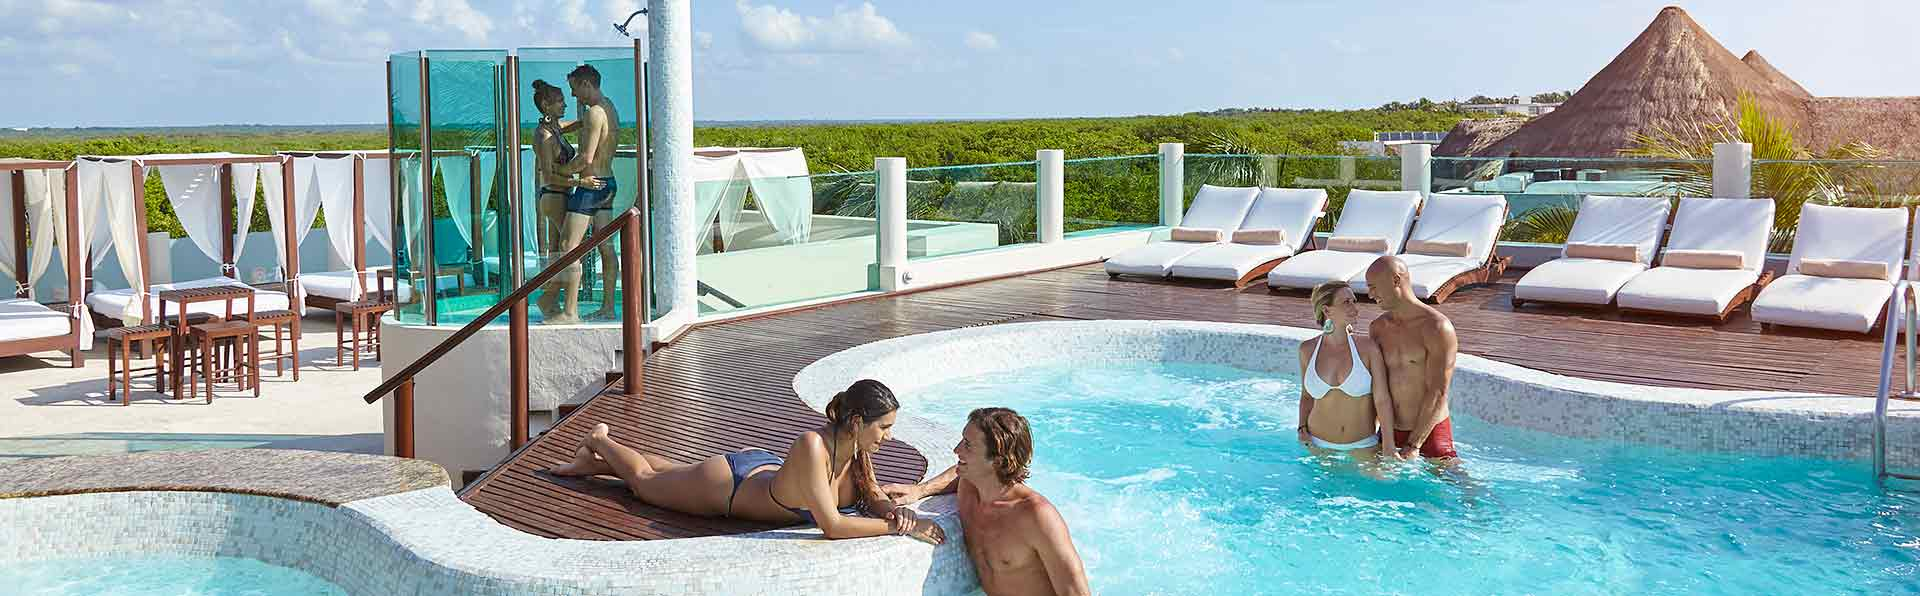 Desire Resort Rooftop Jacuzzi Lounge